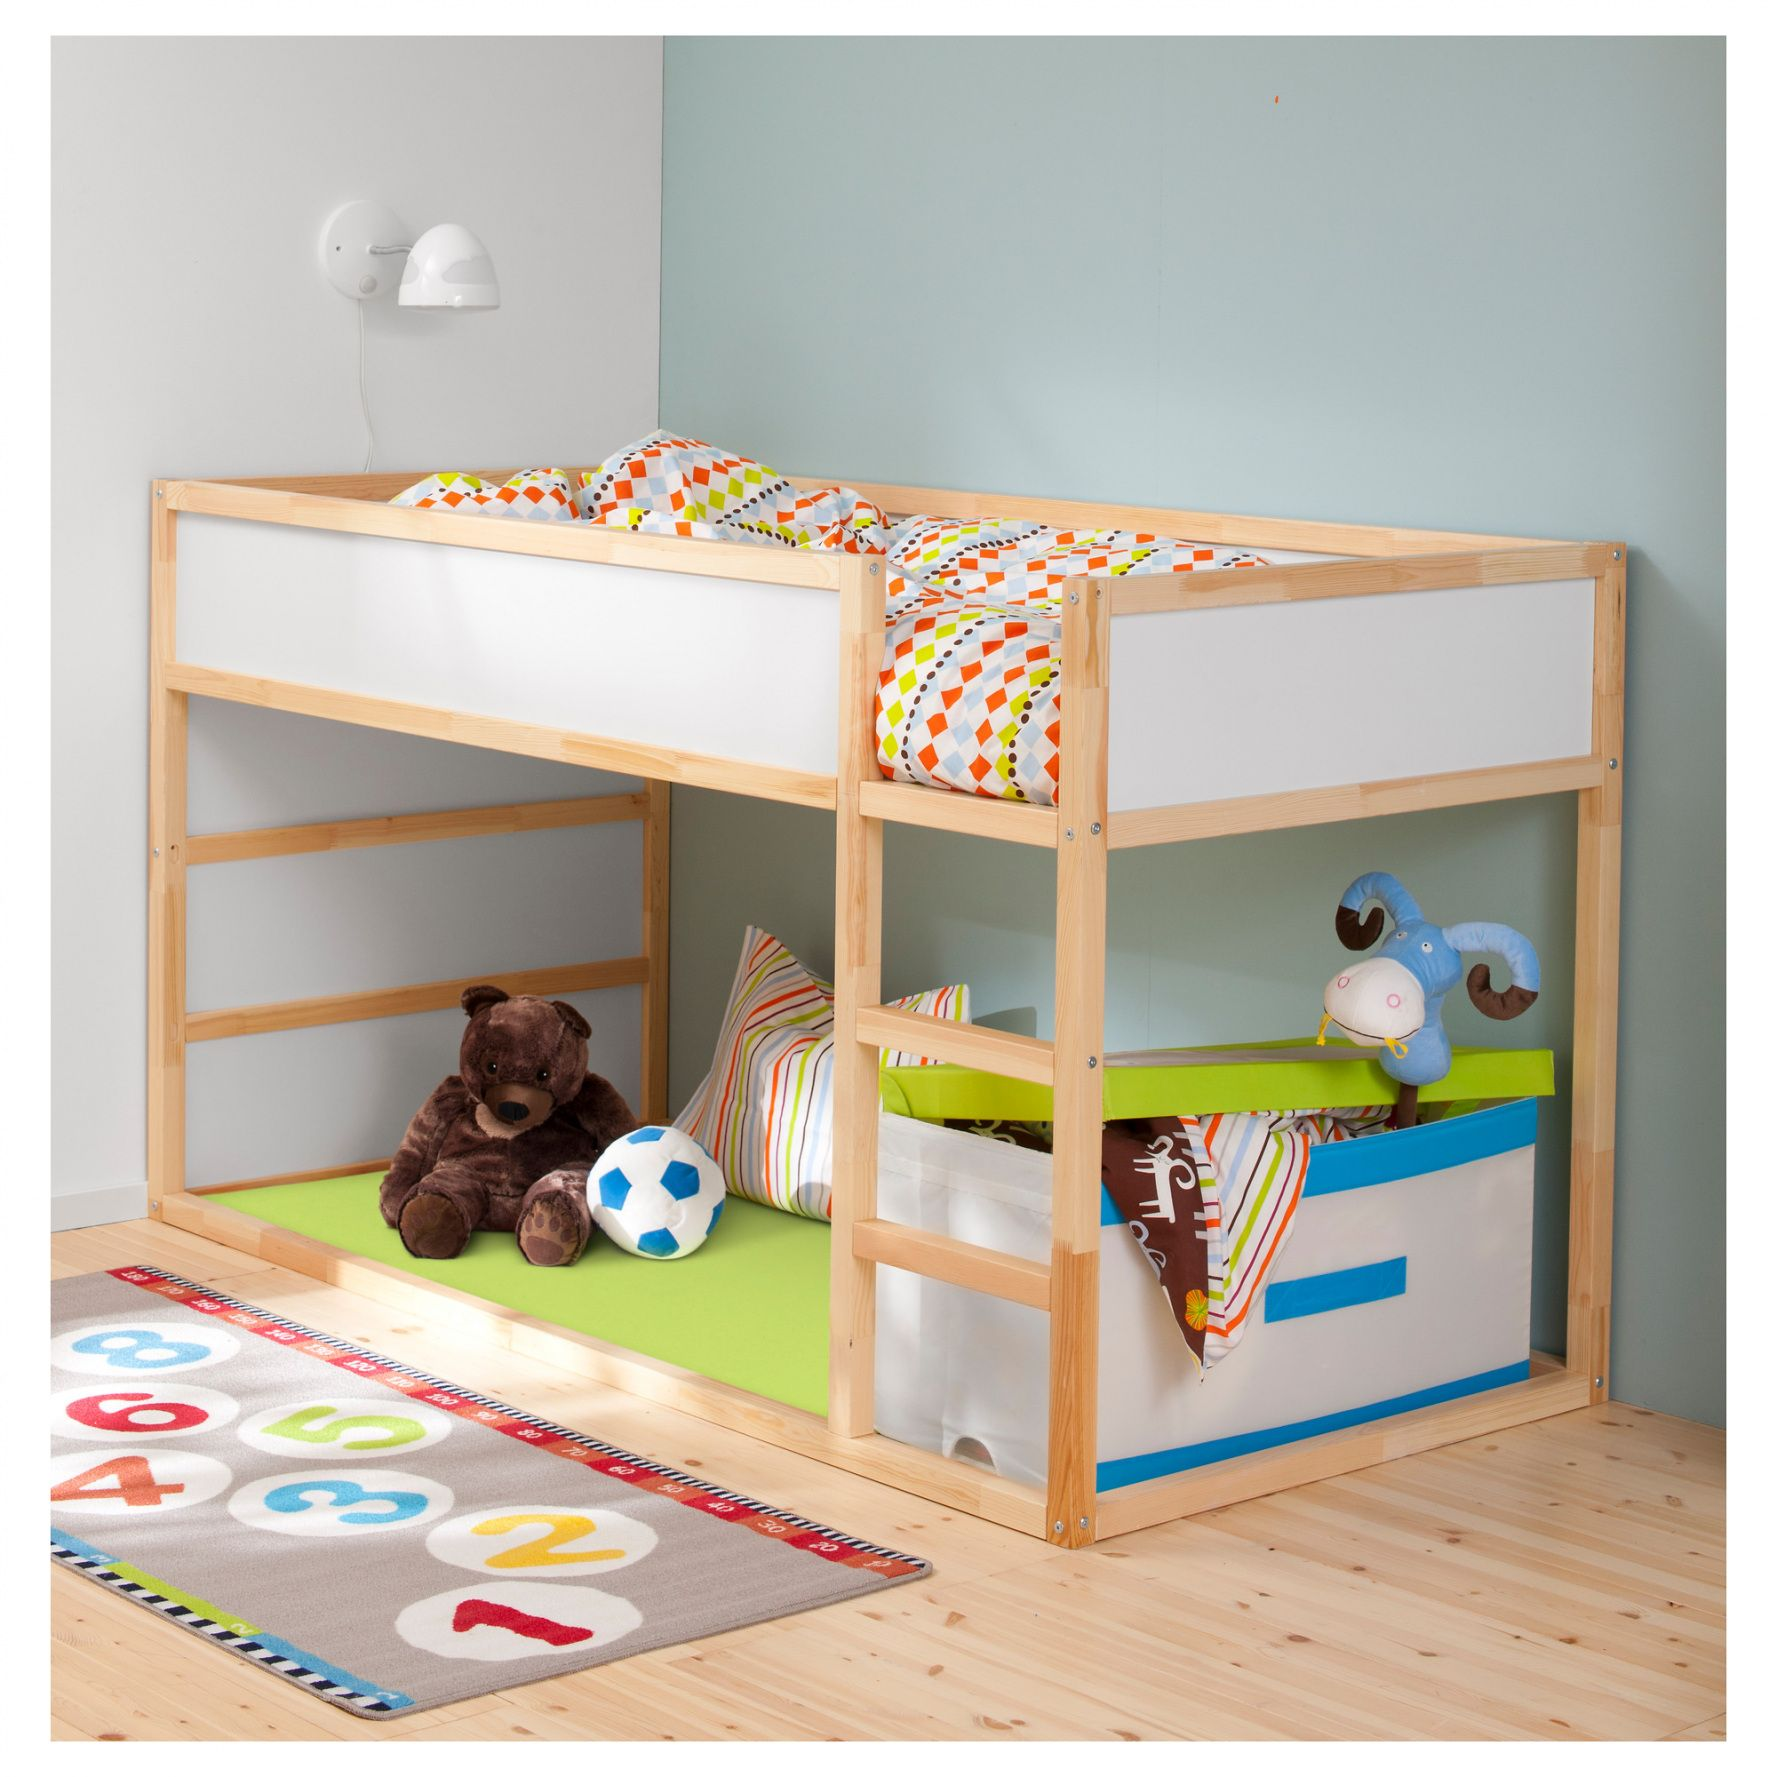 Pin By Neby On Bedroom Apartments Ideas Kid Beds Ikea Bed Bed